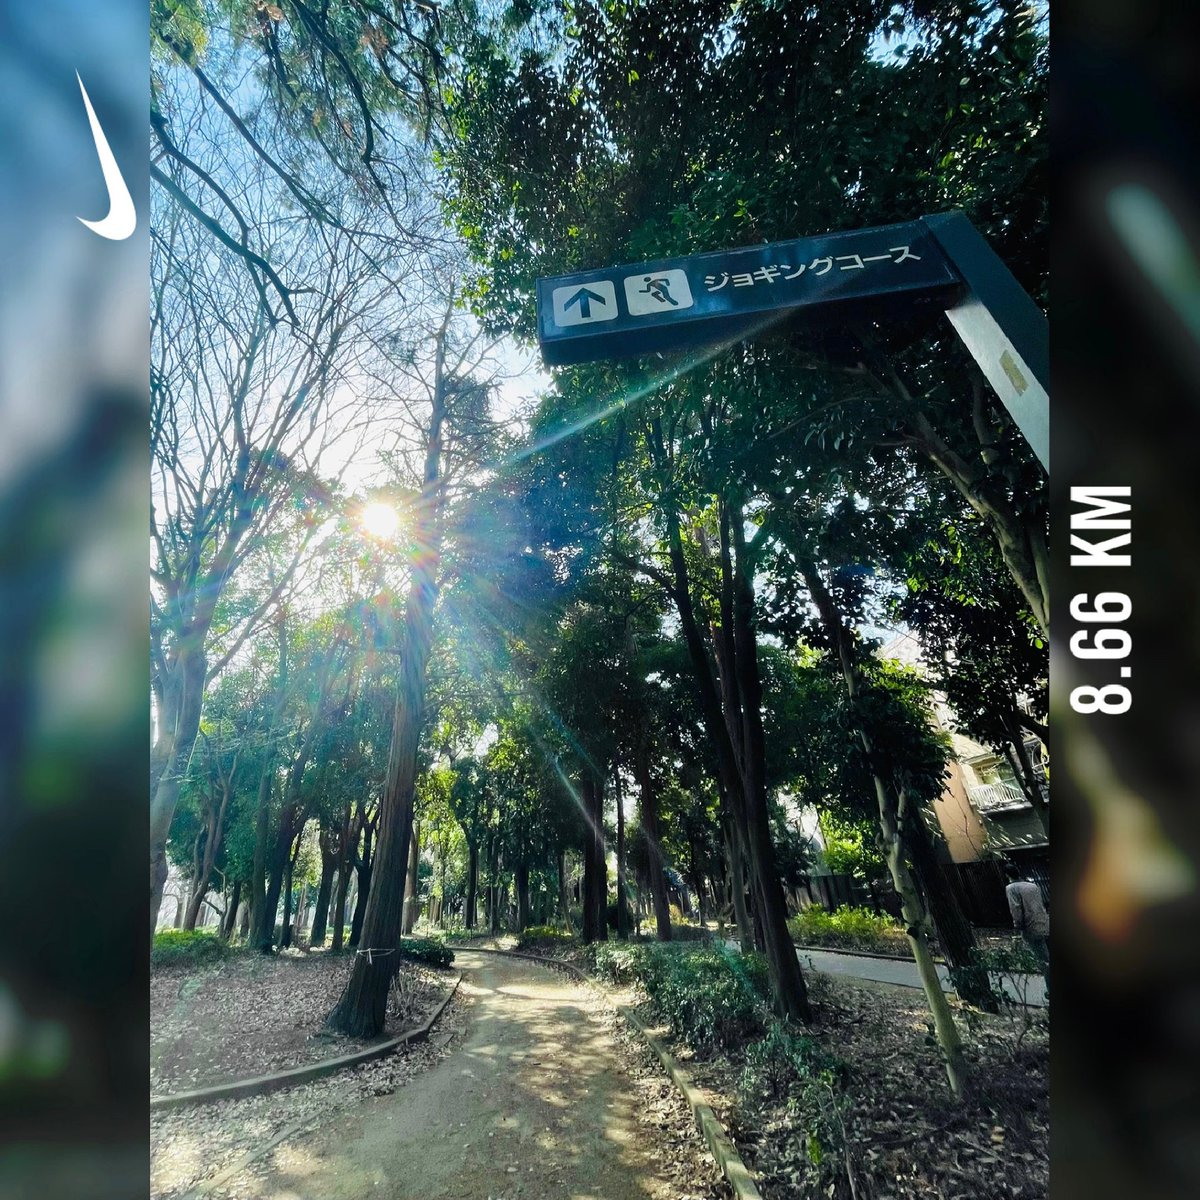 朝ランは心地よい👍#ランニング #誰かに見せたい空 #ファインダー越しの私の世界 #nike #nikeplus #instarunner #vlog #instagood #photooftheday #picoftheday #instadaily #igers #all_shots #webstagram #instacool #photo #diet #justdoit #3月